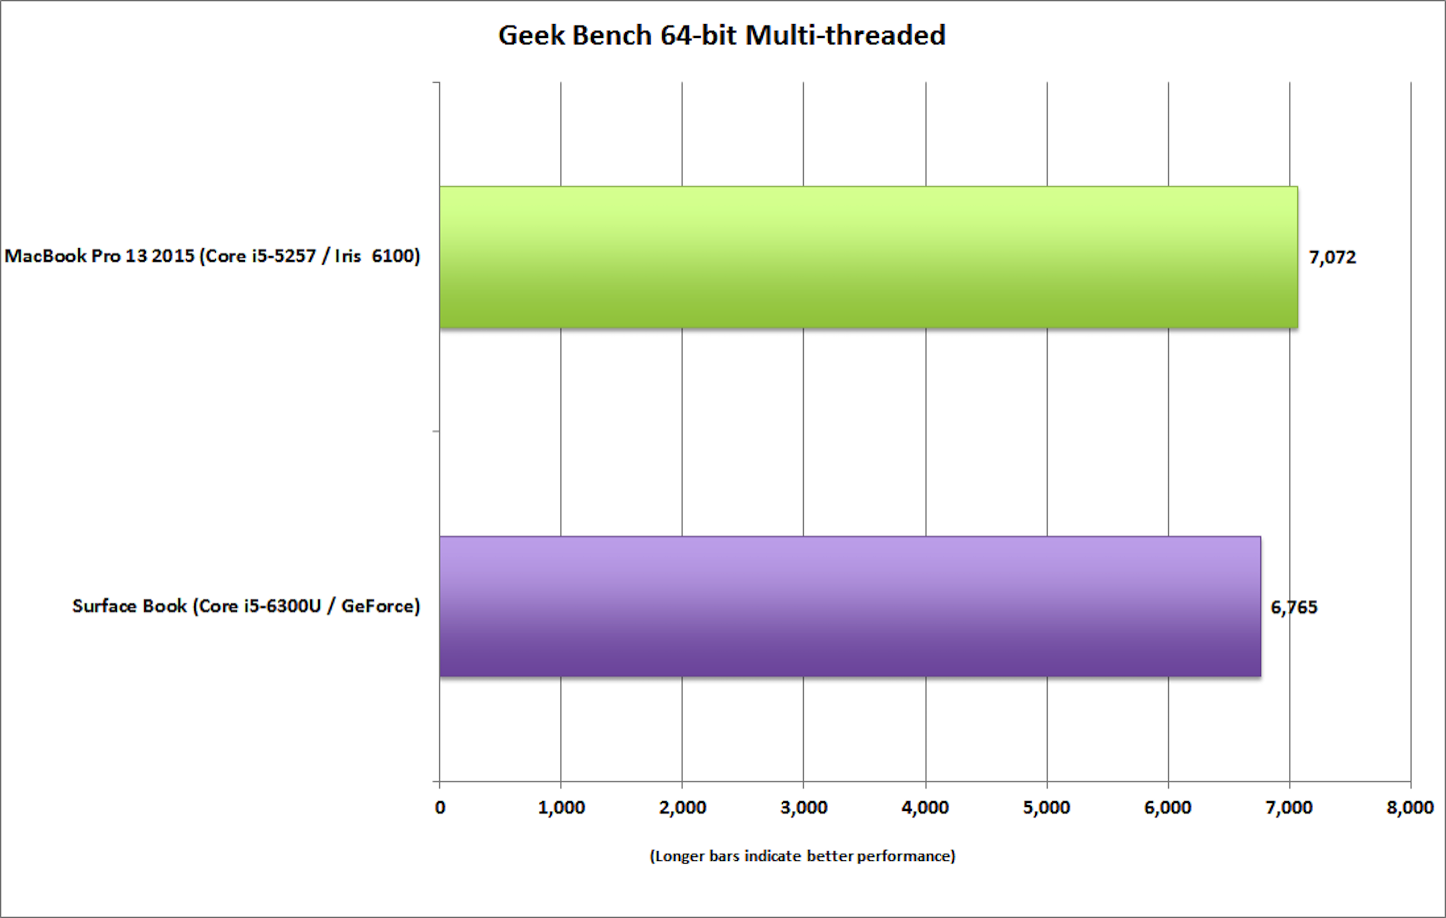 surface_book_vs_macbook_pro_13_geekbench_multi-100623044-orig.png